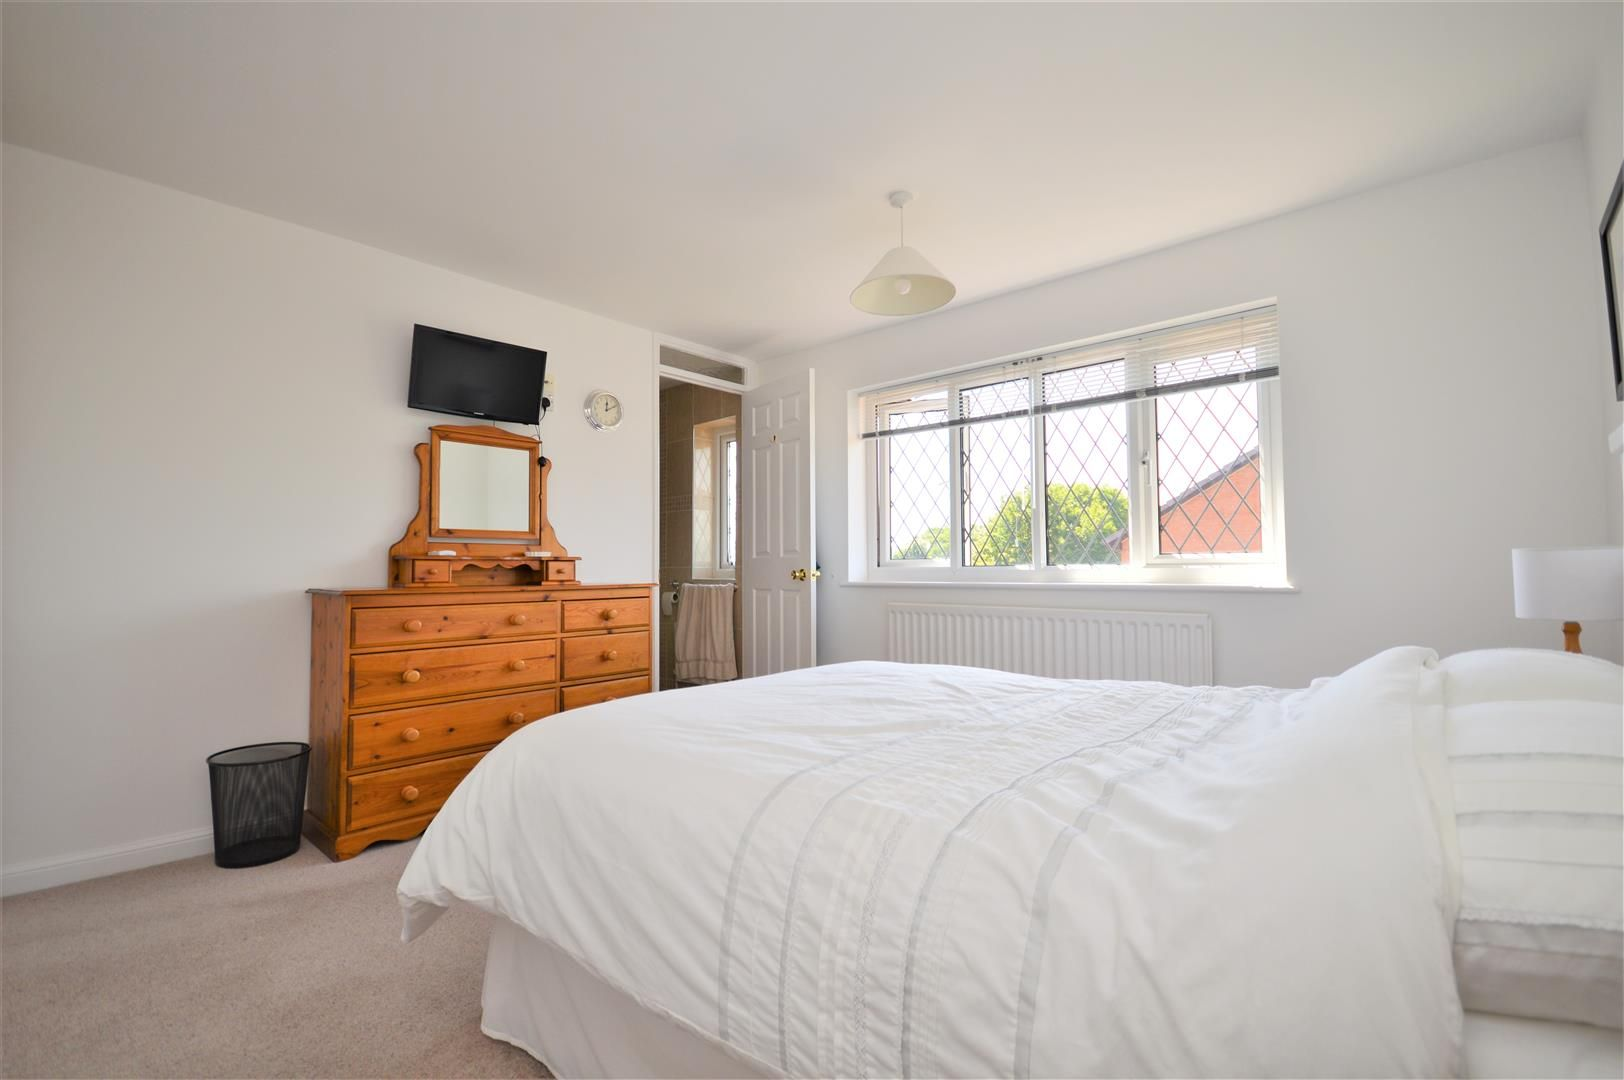 4 bed detached for sale in Hereford  - Property Image 11